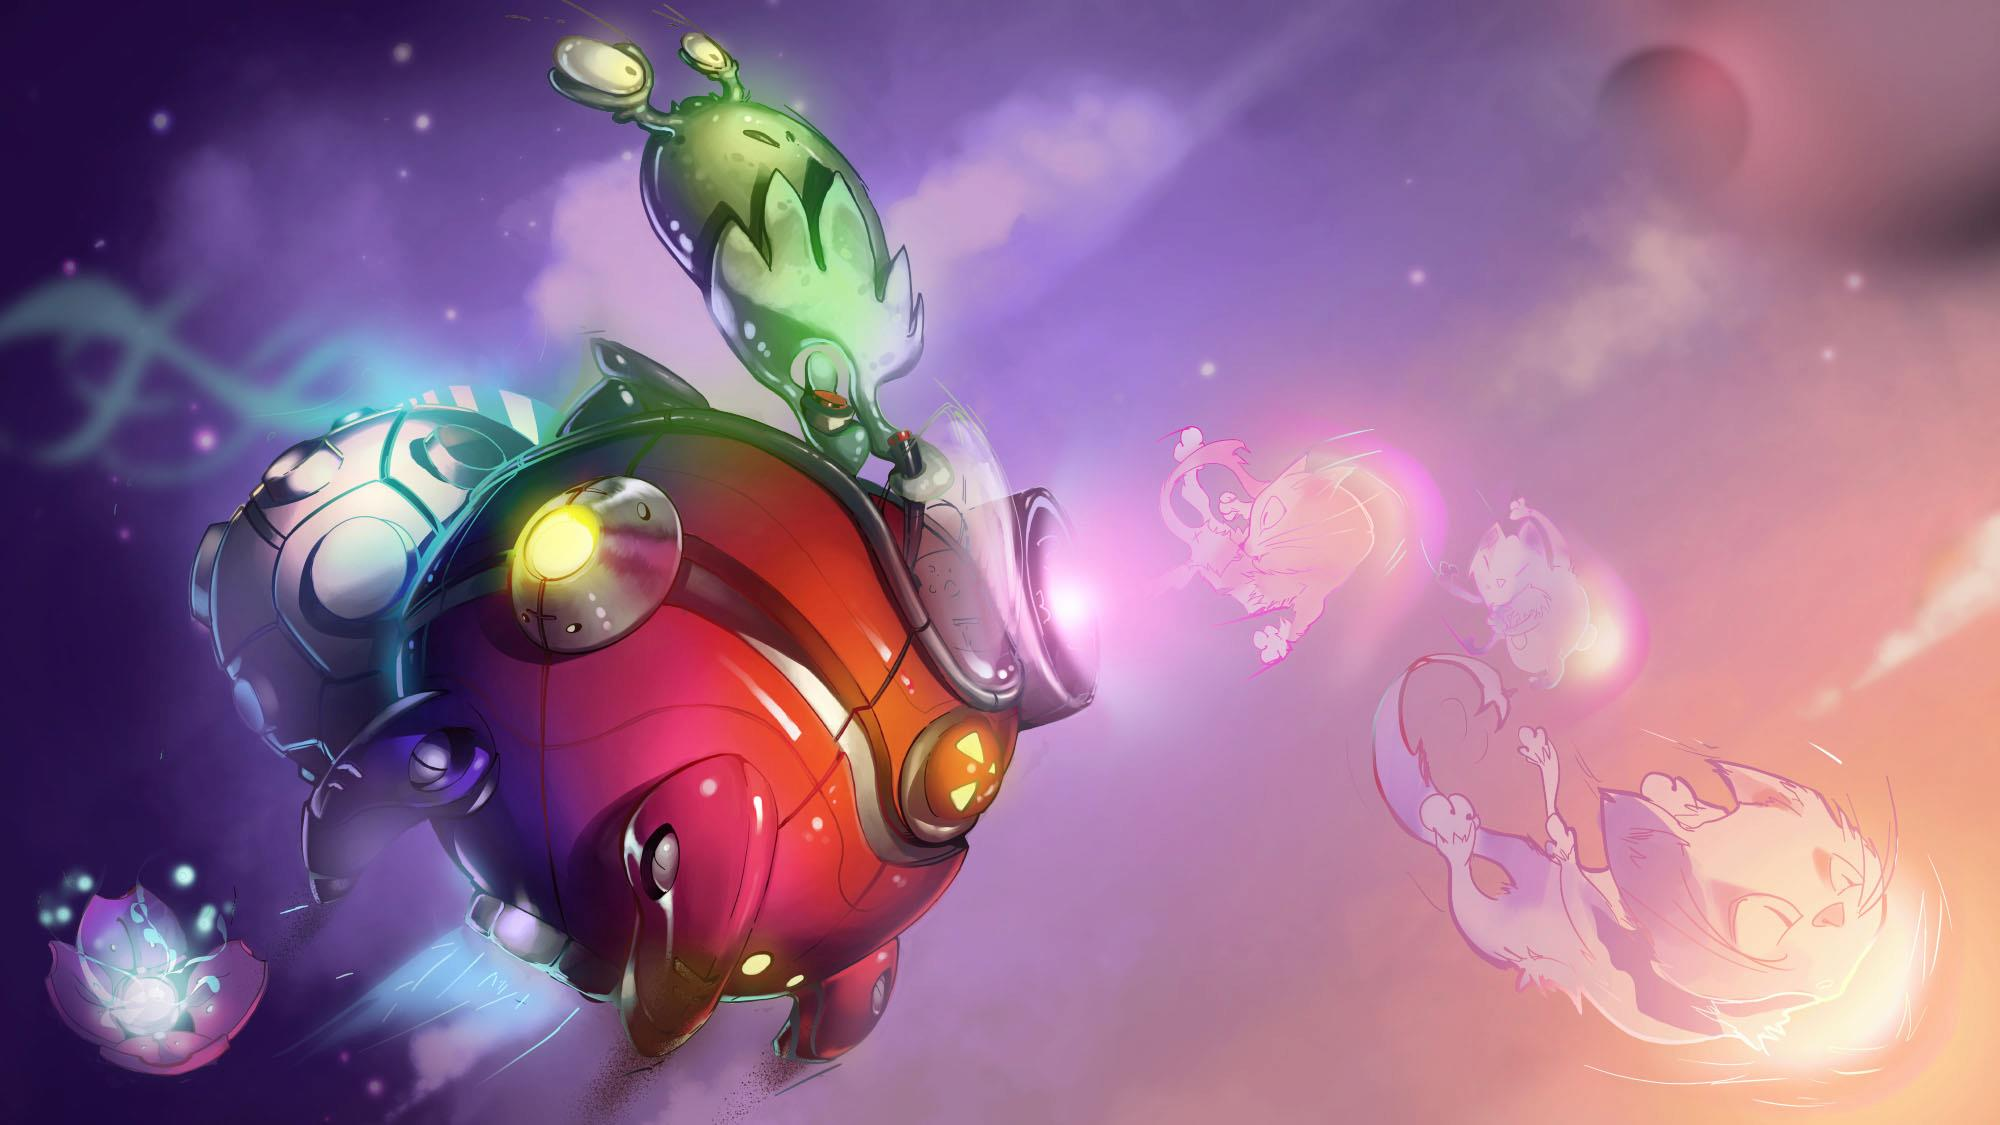 Awesomenauts 1.1 patch notes released, DLC characters detailed